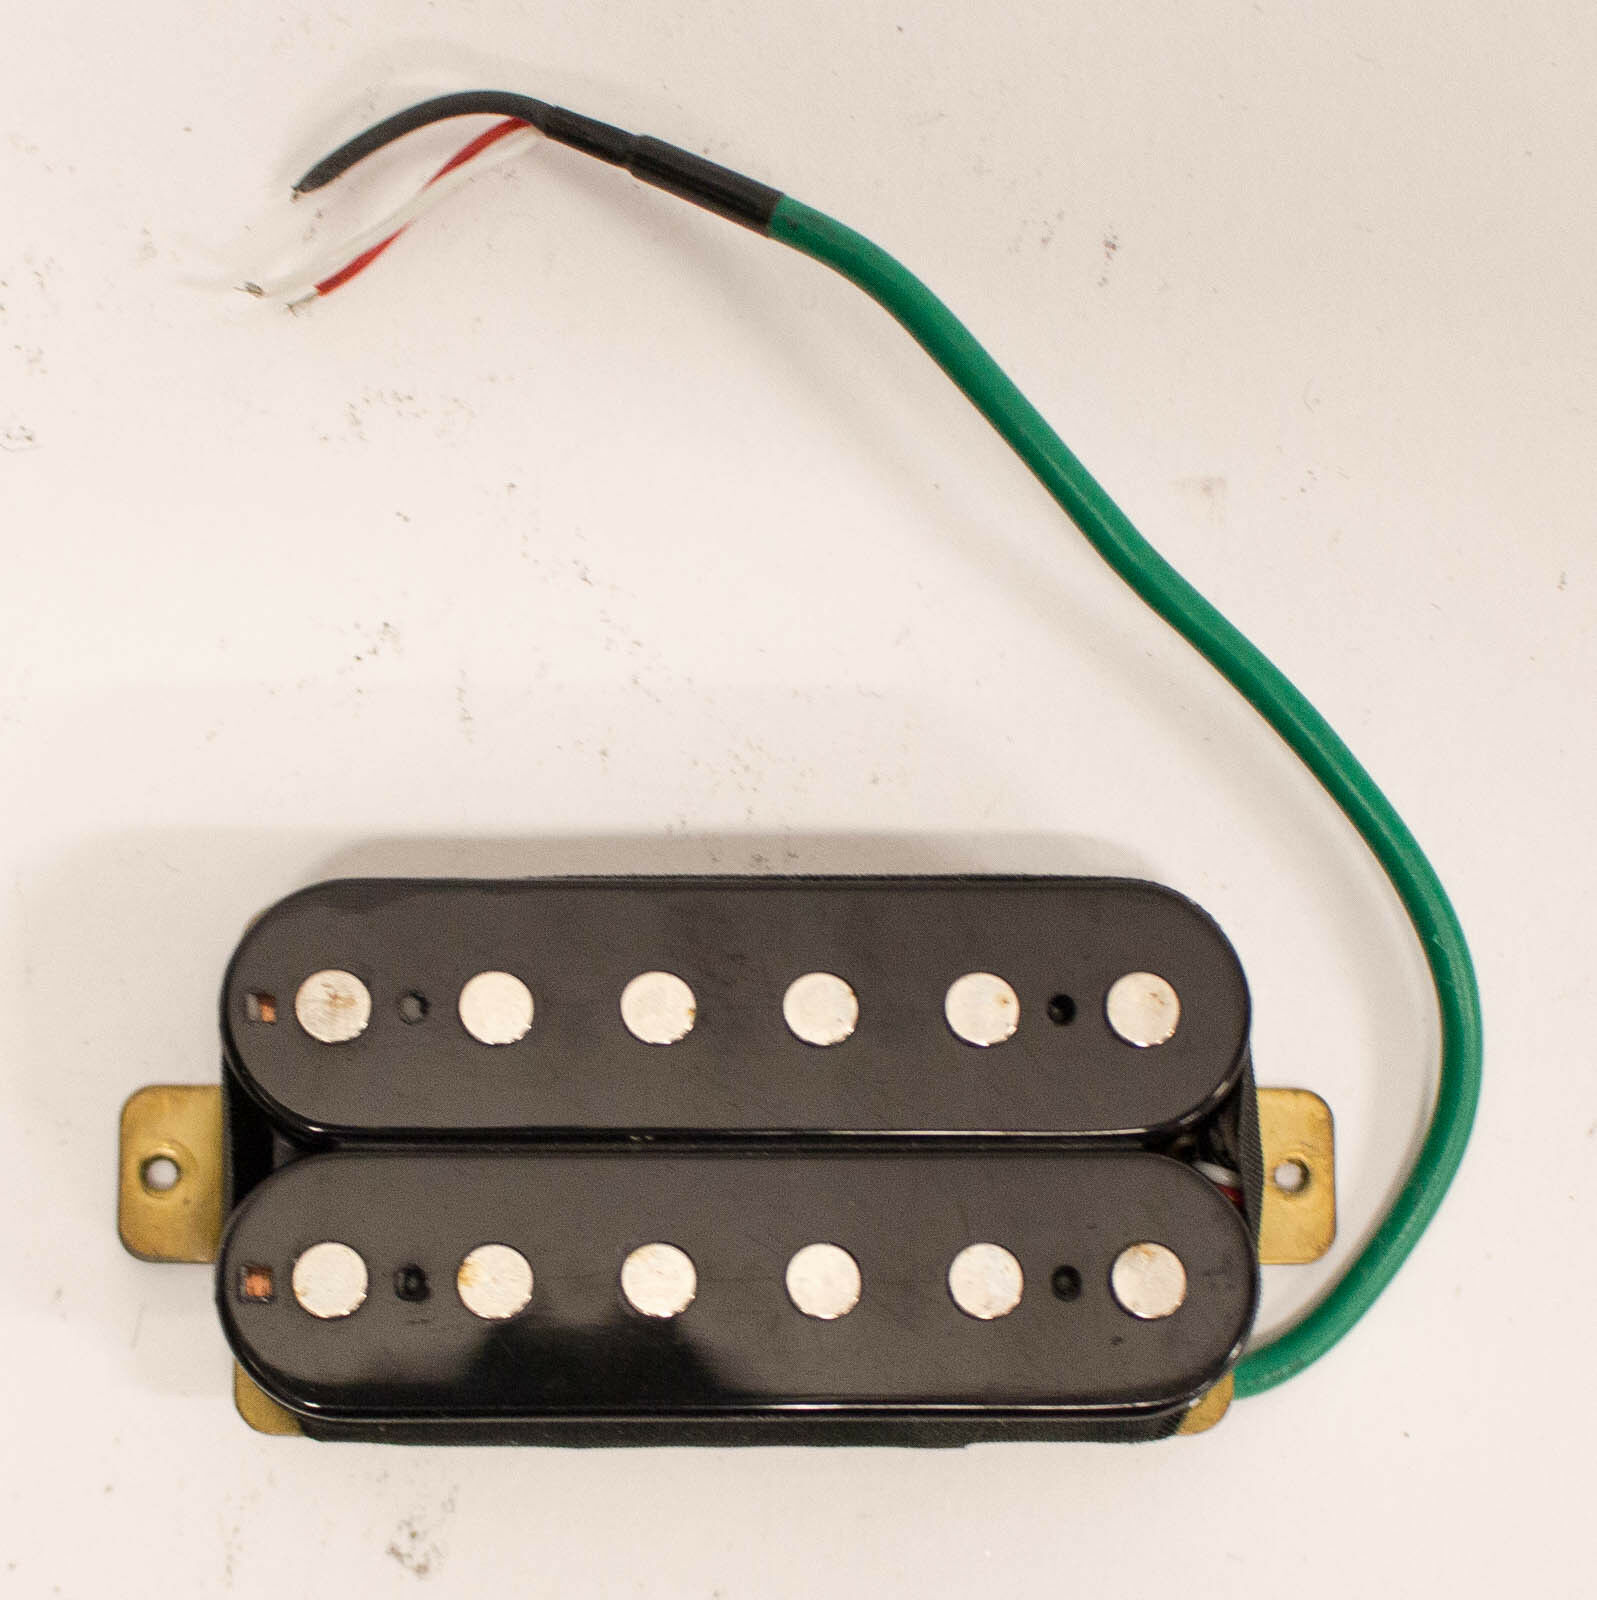 Early 90s Dimarzio Style Humbucker Neck Pickup for Electric Guitar - schwarz